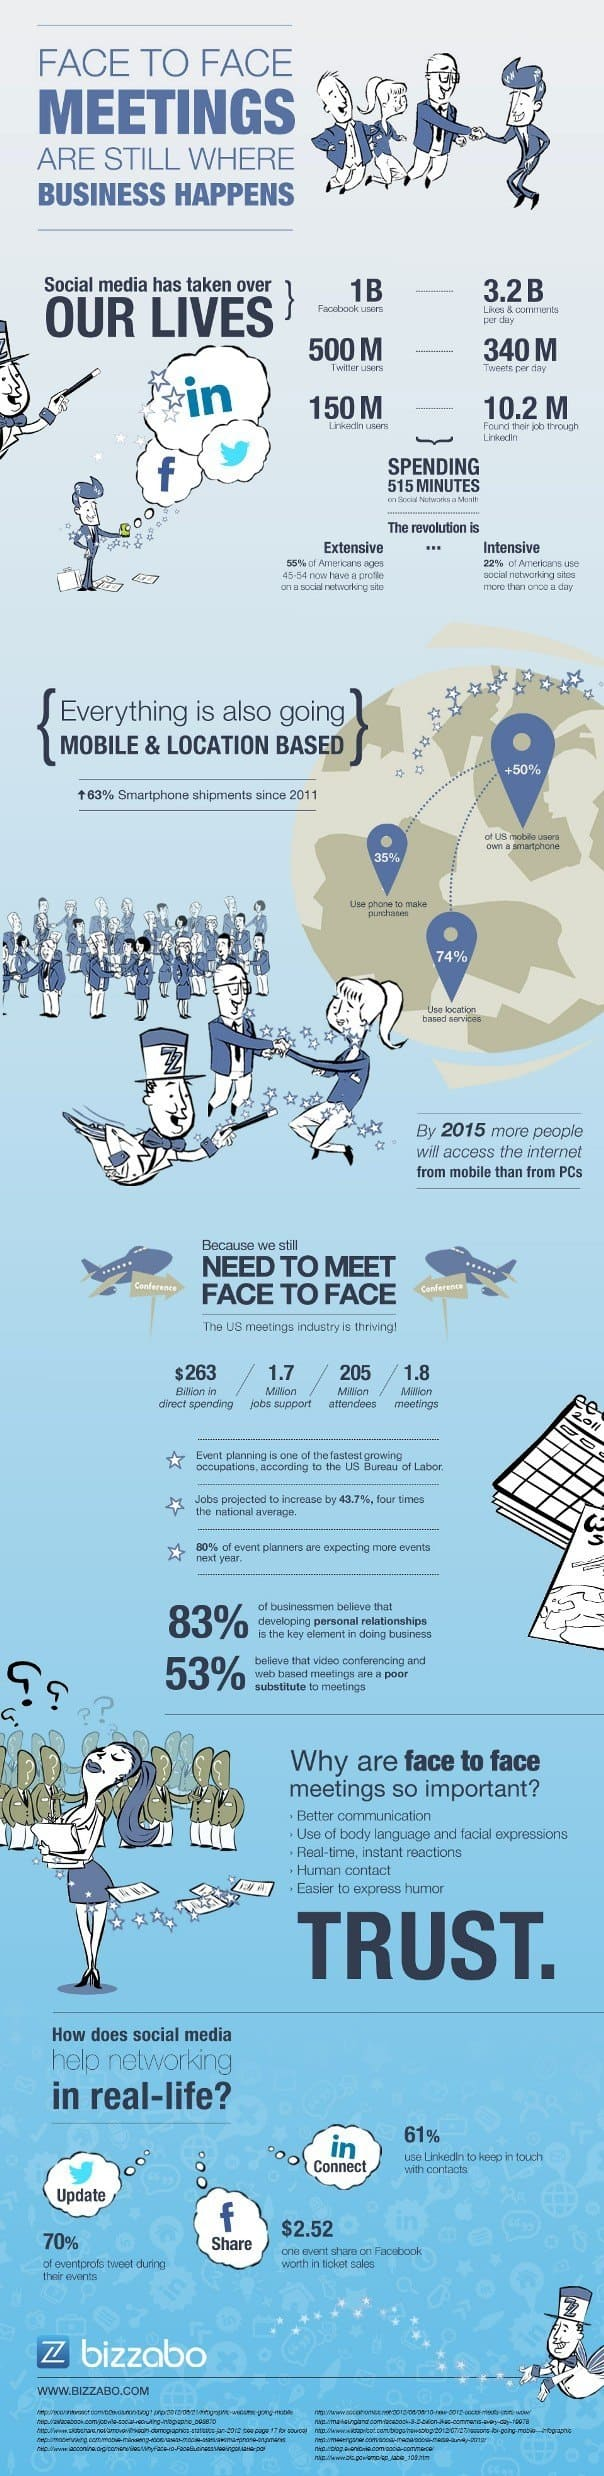 Face to Face Meetings Infographic